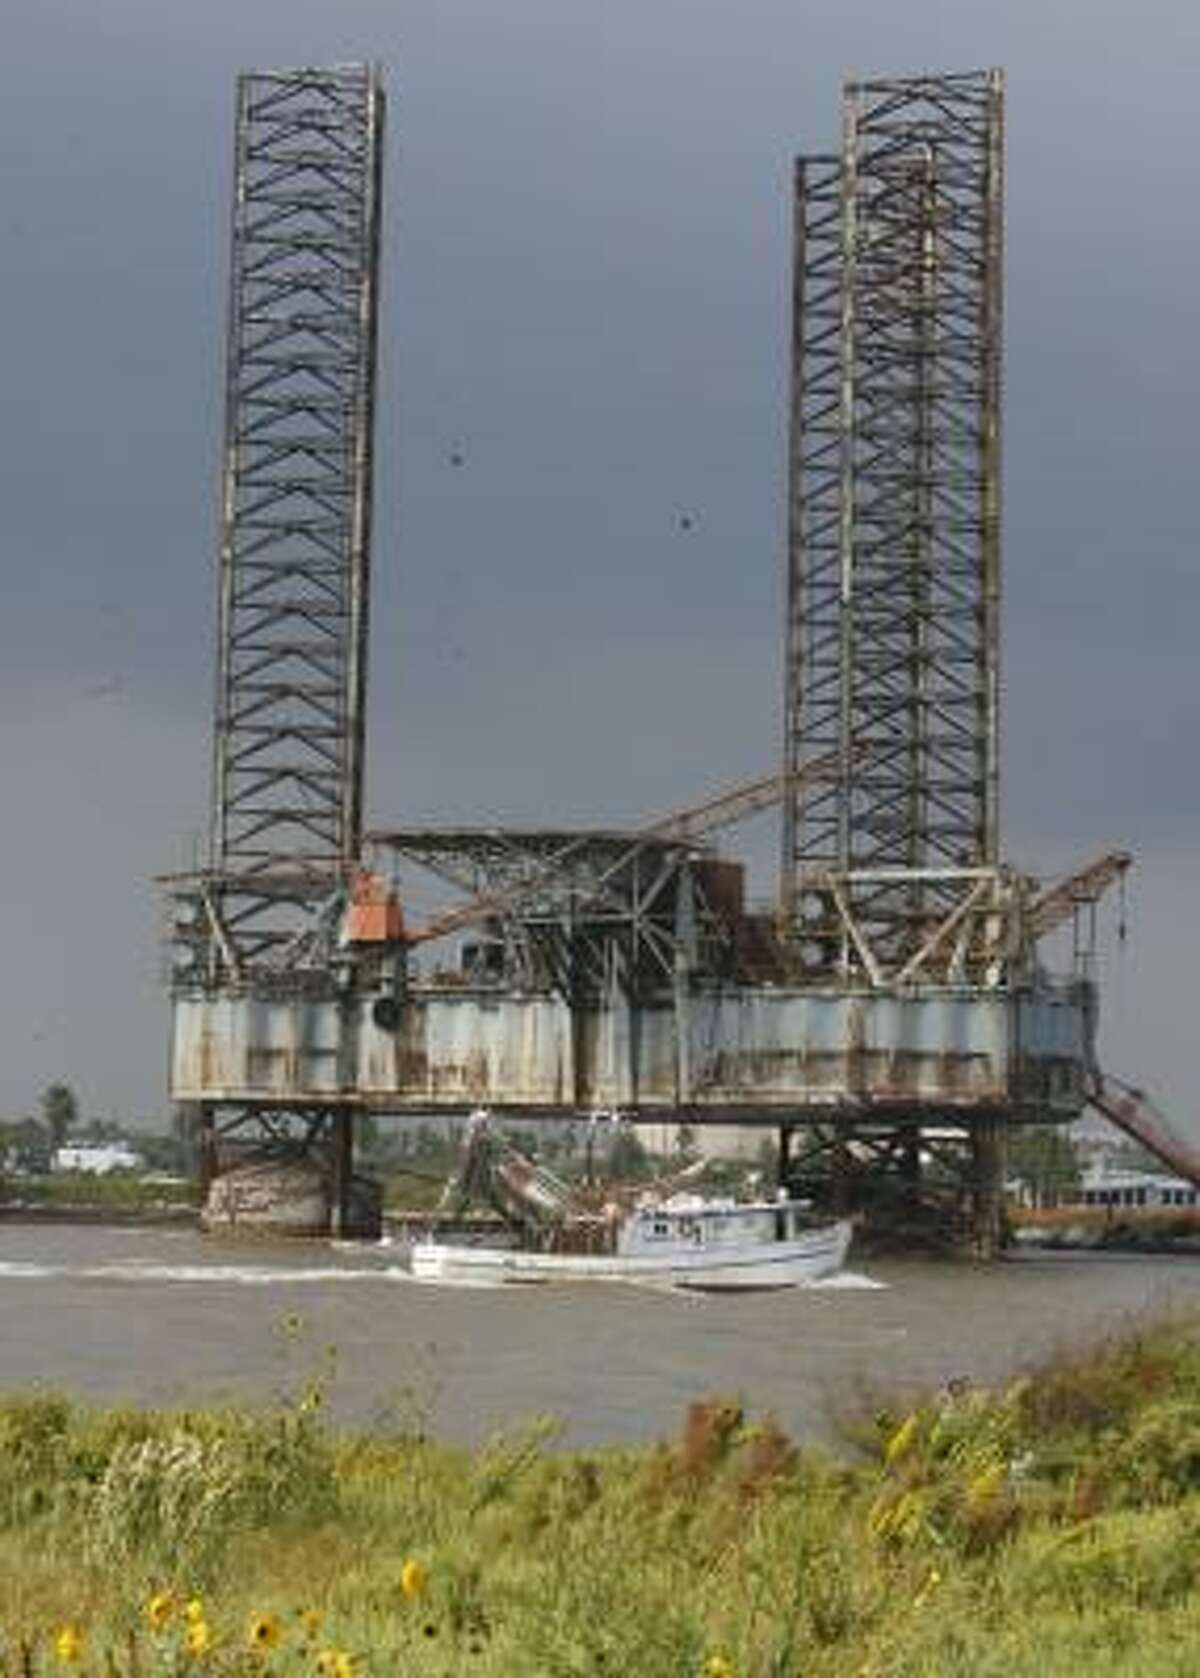 The offshore oil rig Zeus, seen in this October 2006 file photo, has been parked in the Freeport channel for 14 years.